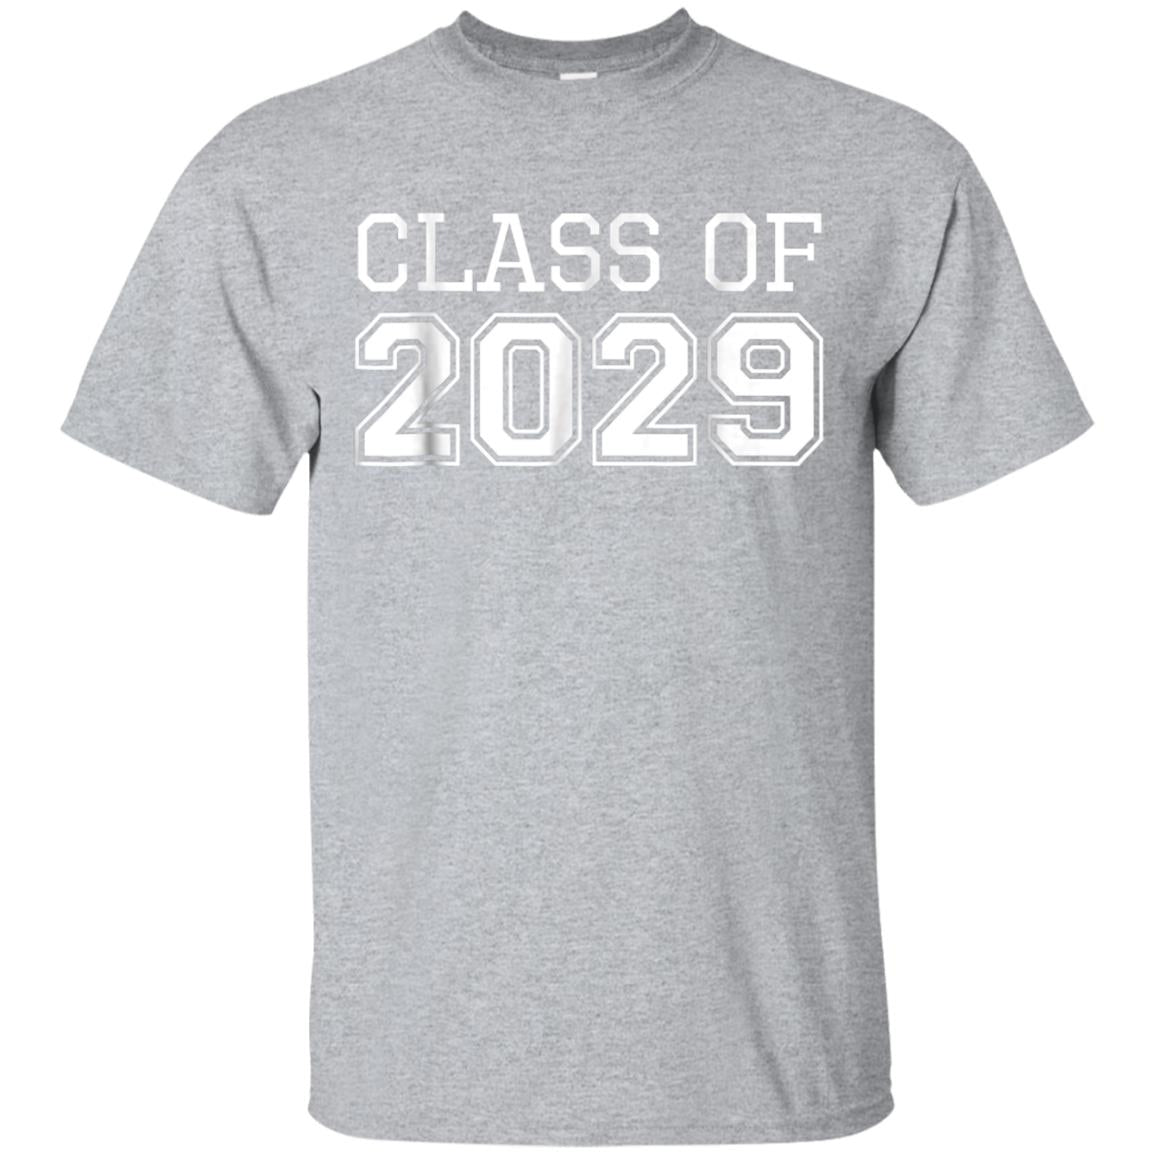 Class Of 2029 For Future Graduates T-Shirt 99promocode